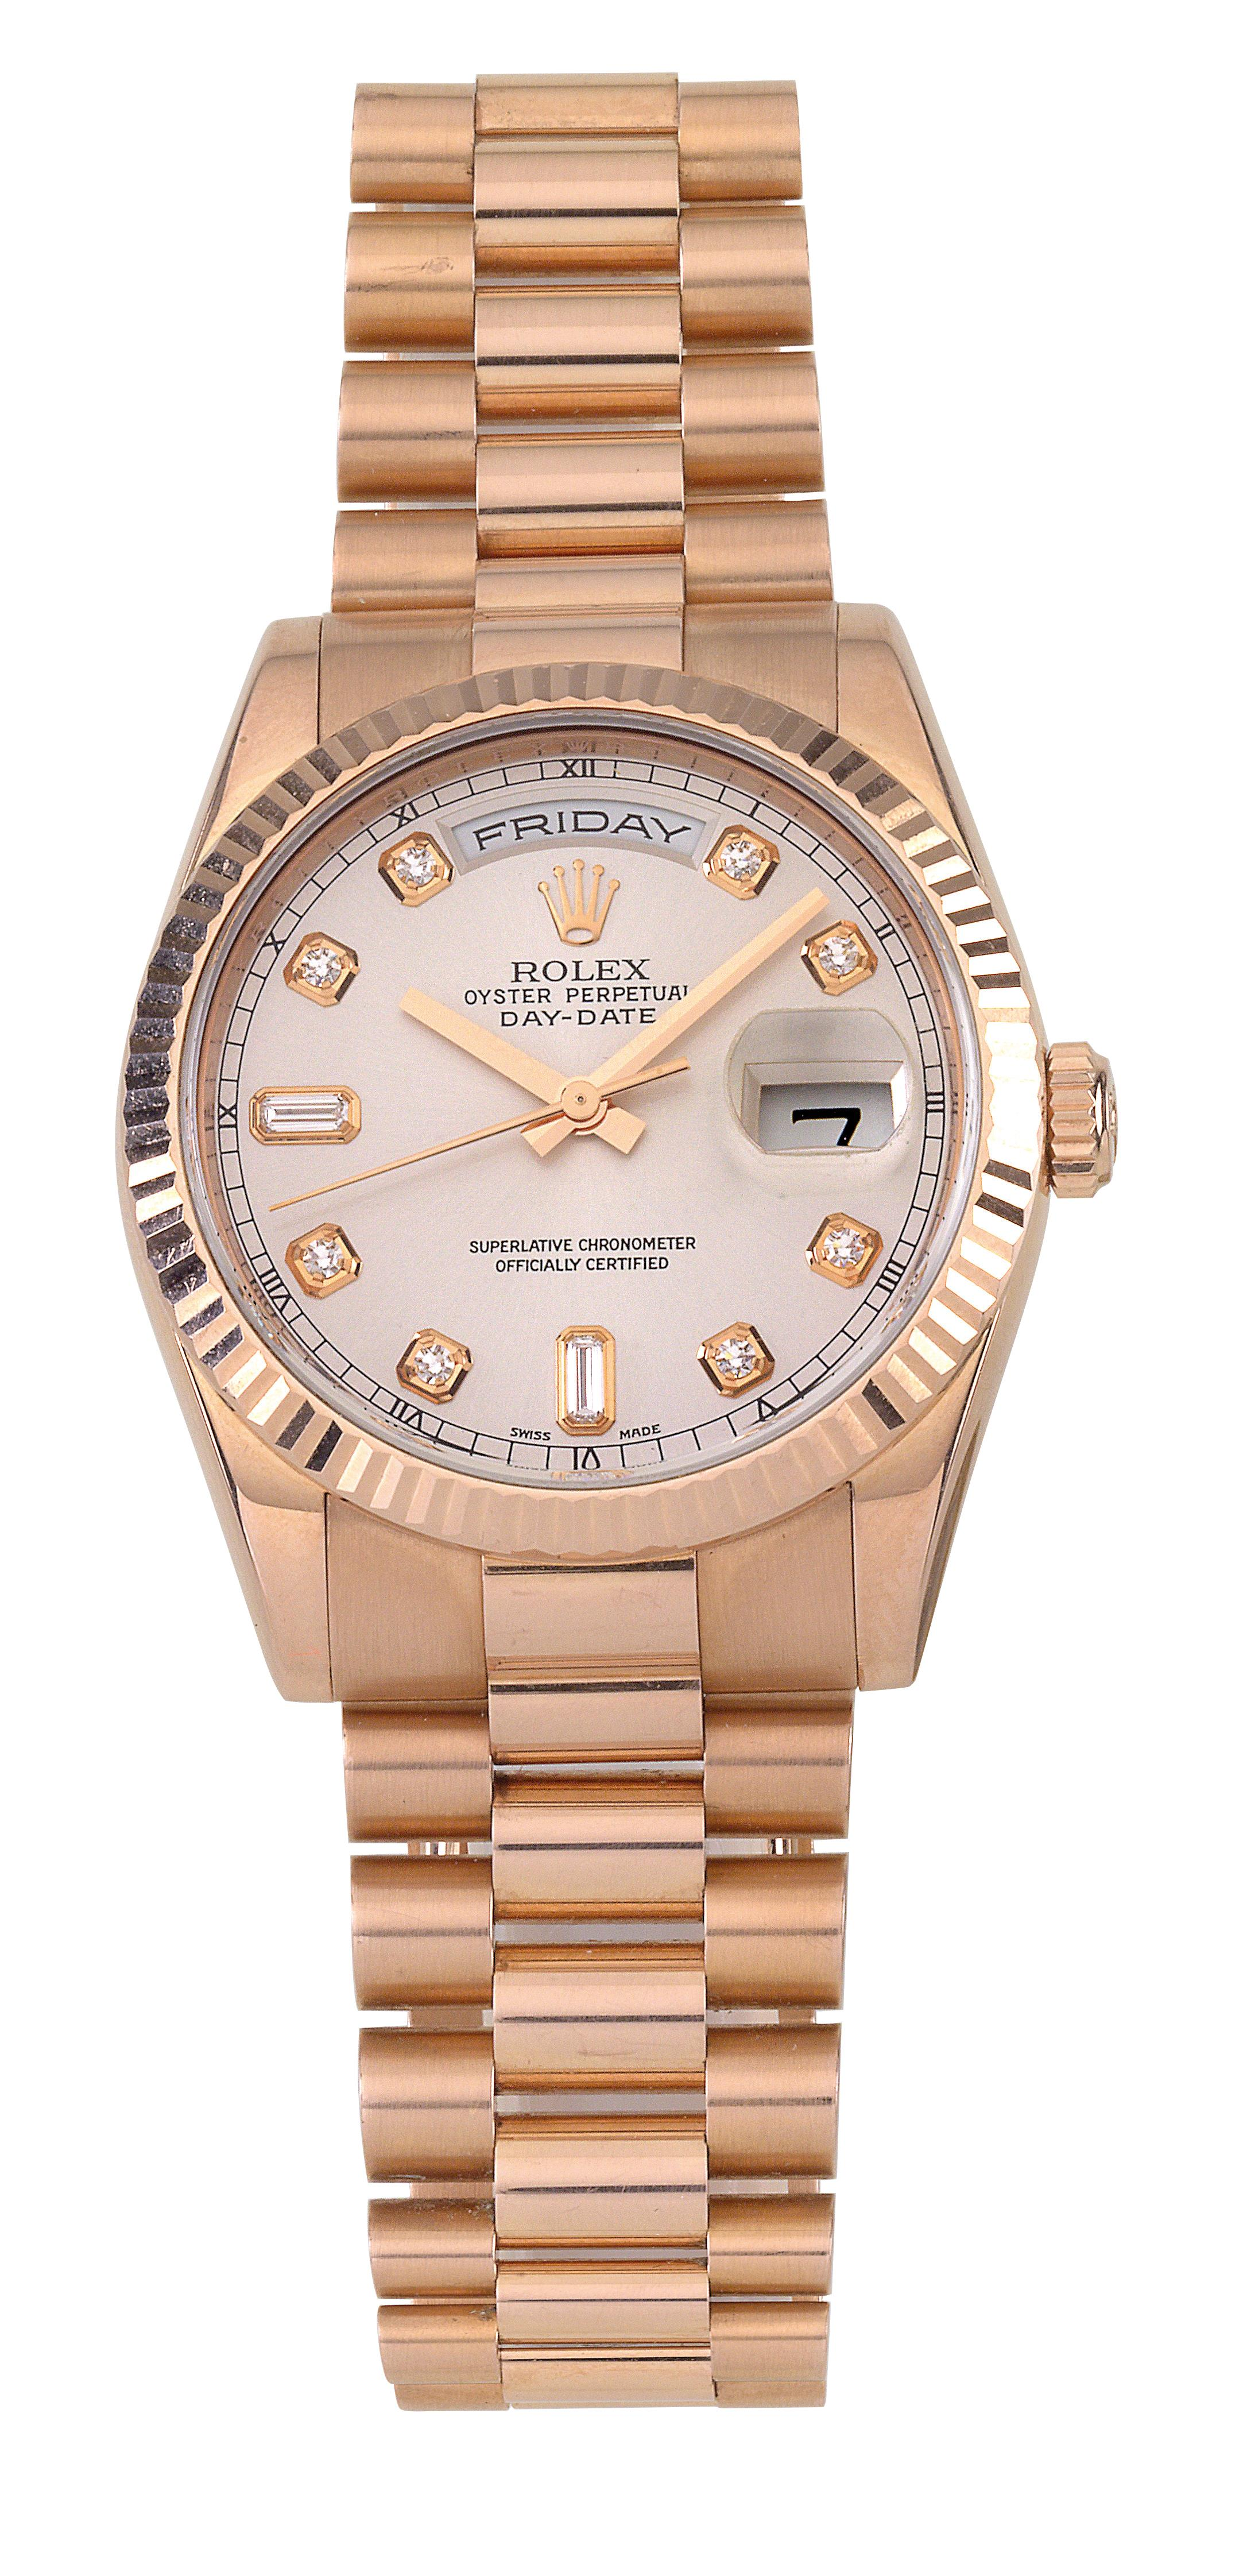 Rolex oyster perpetual day date price